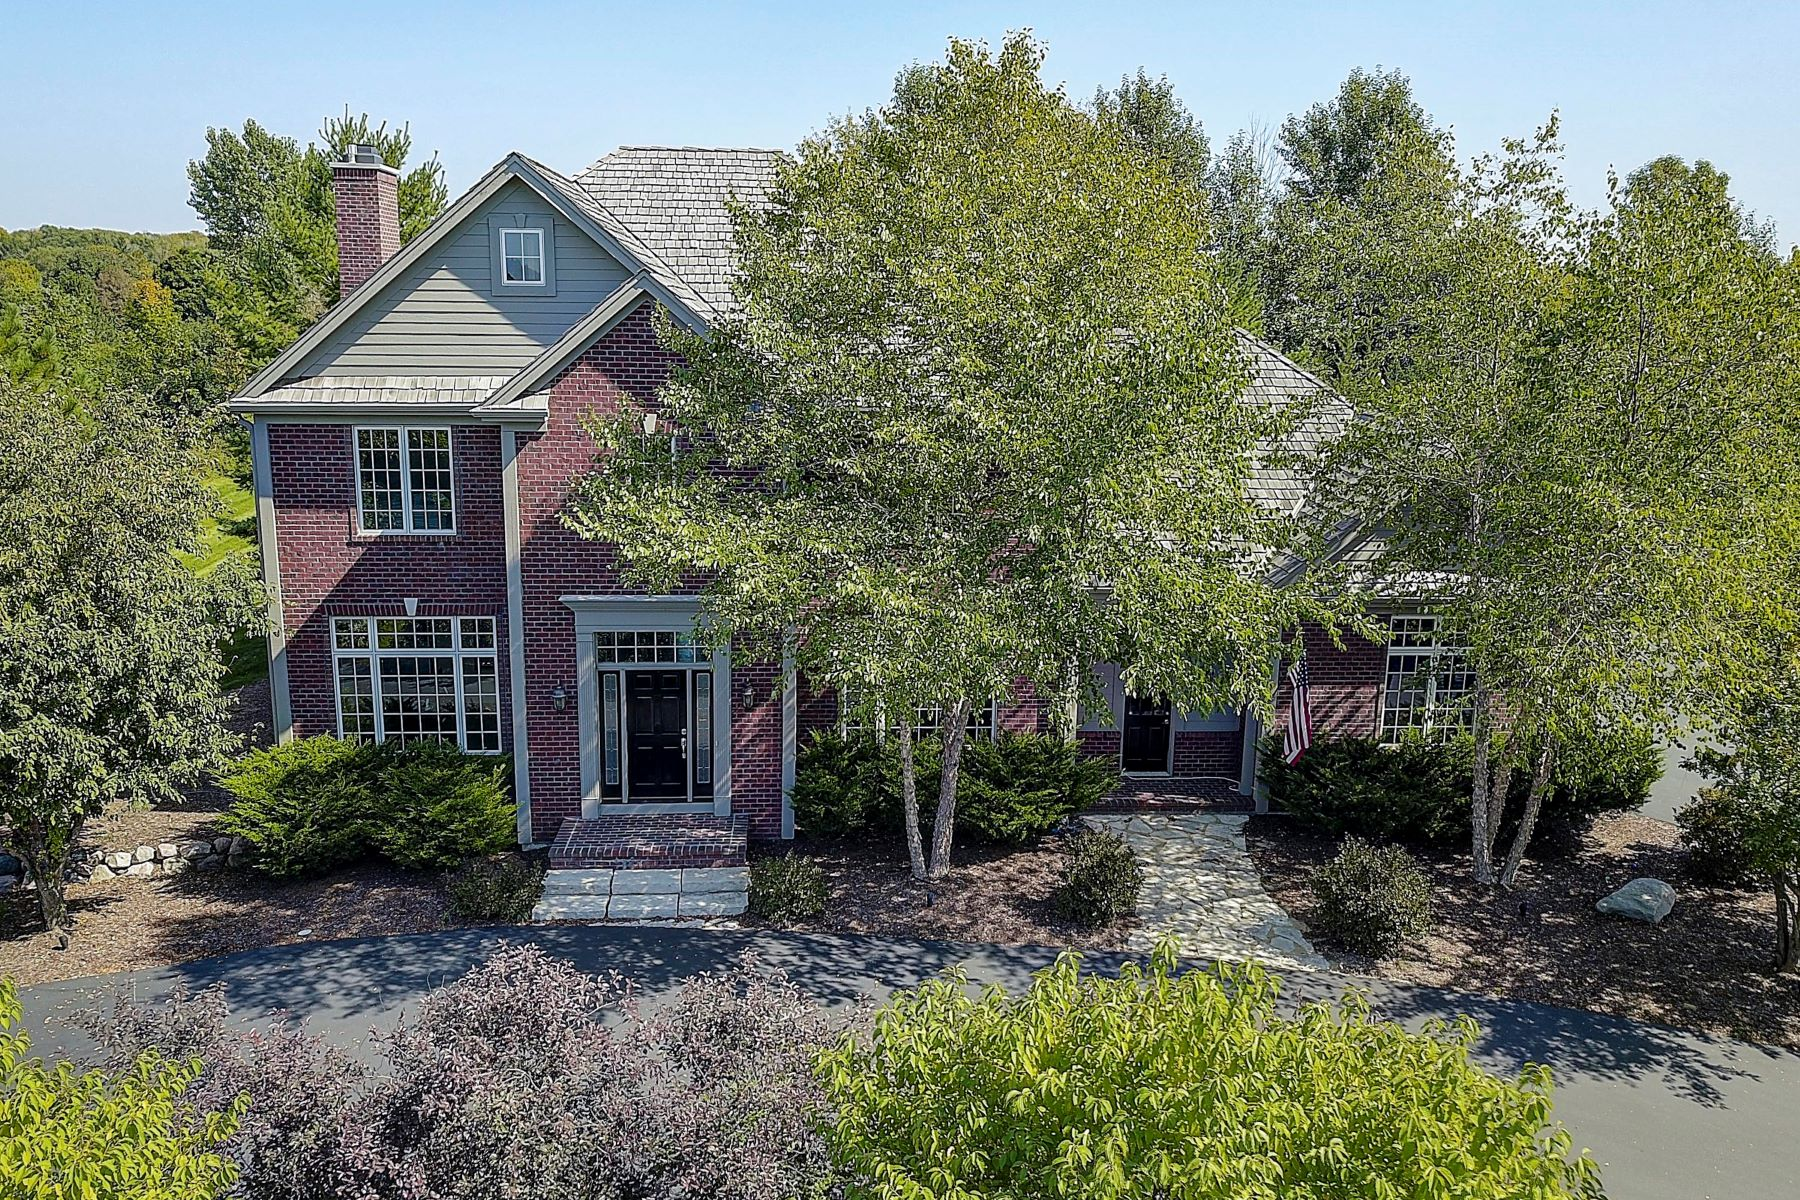 Single Family Homes for Active at 10634 N. Wood Crest Dr. Mequon, Wisconsin 53092 United States